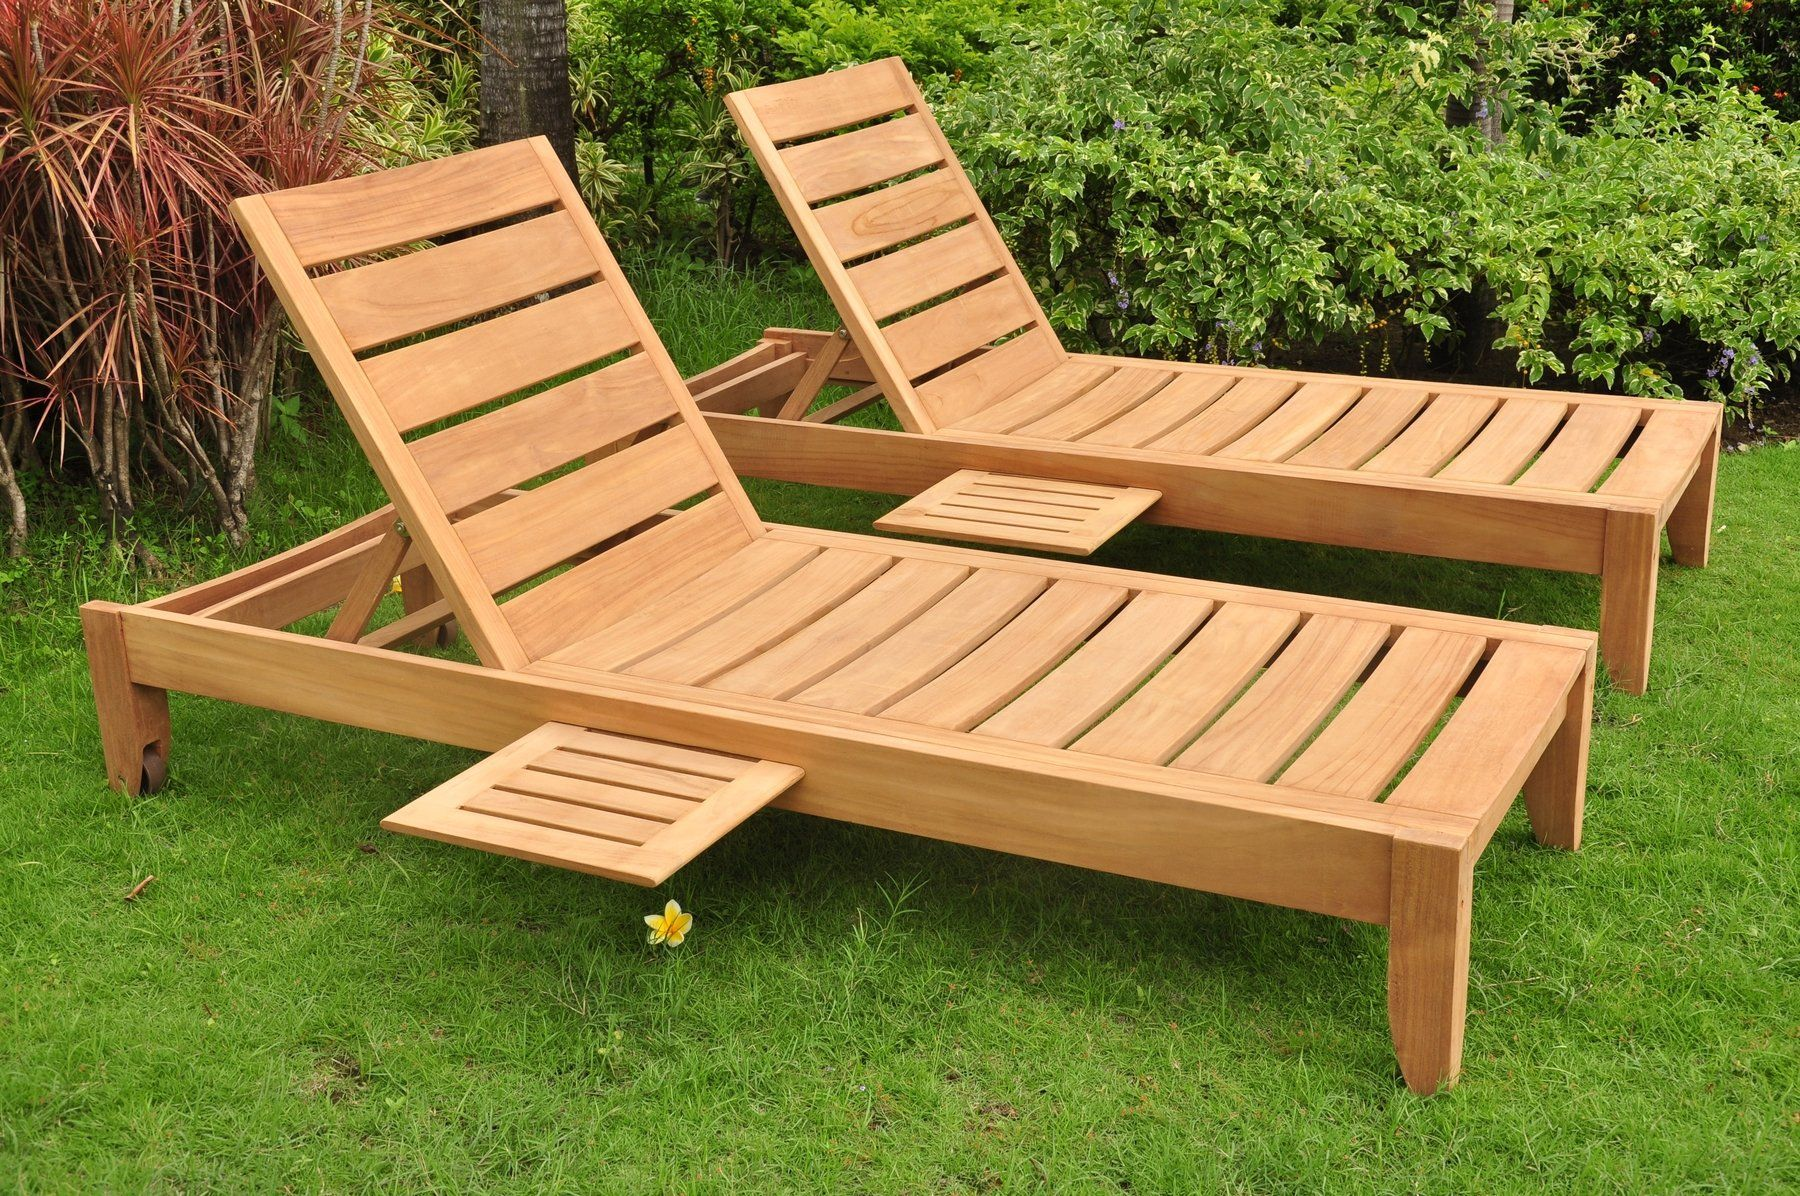 Robot Check Outdoor Furniture Plans Patio Lounge Chairs Diy Patio Furniture